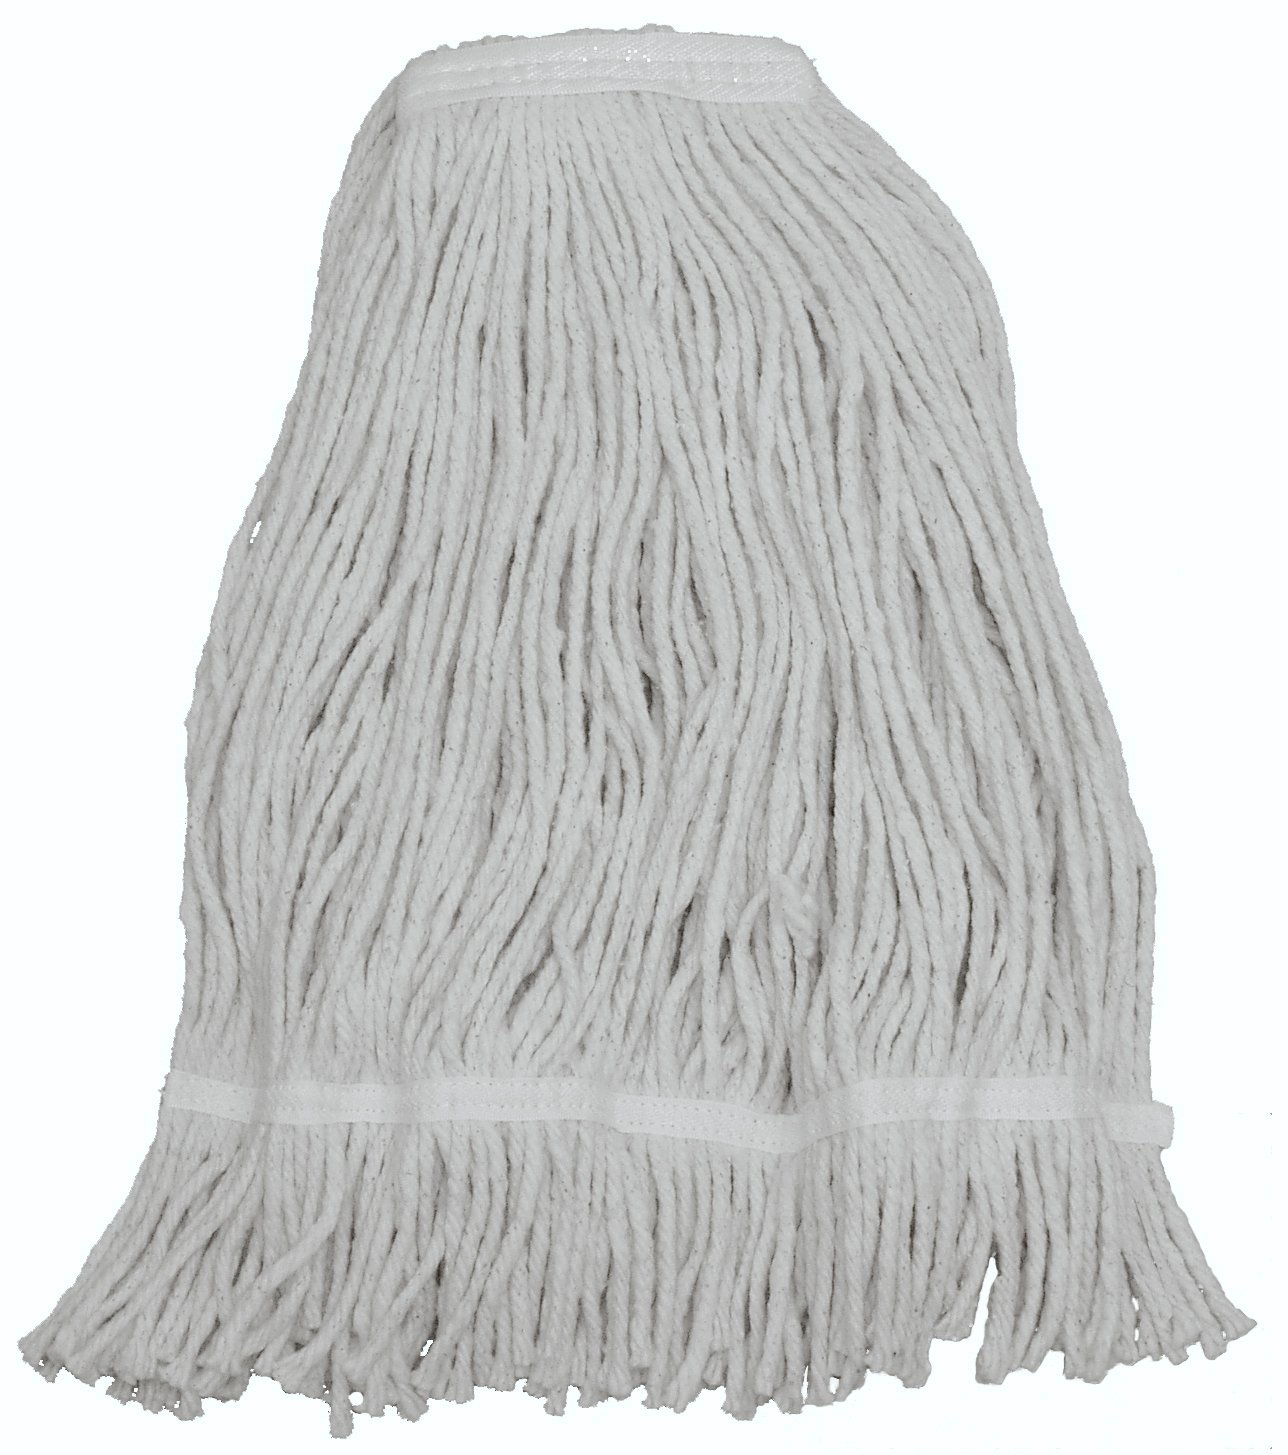 Zephyr 15016 Shineup 4-ply Cotton 16oz Wide Spread Cut End Wet Mop Head with Fantail (Pack of 12)